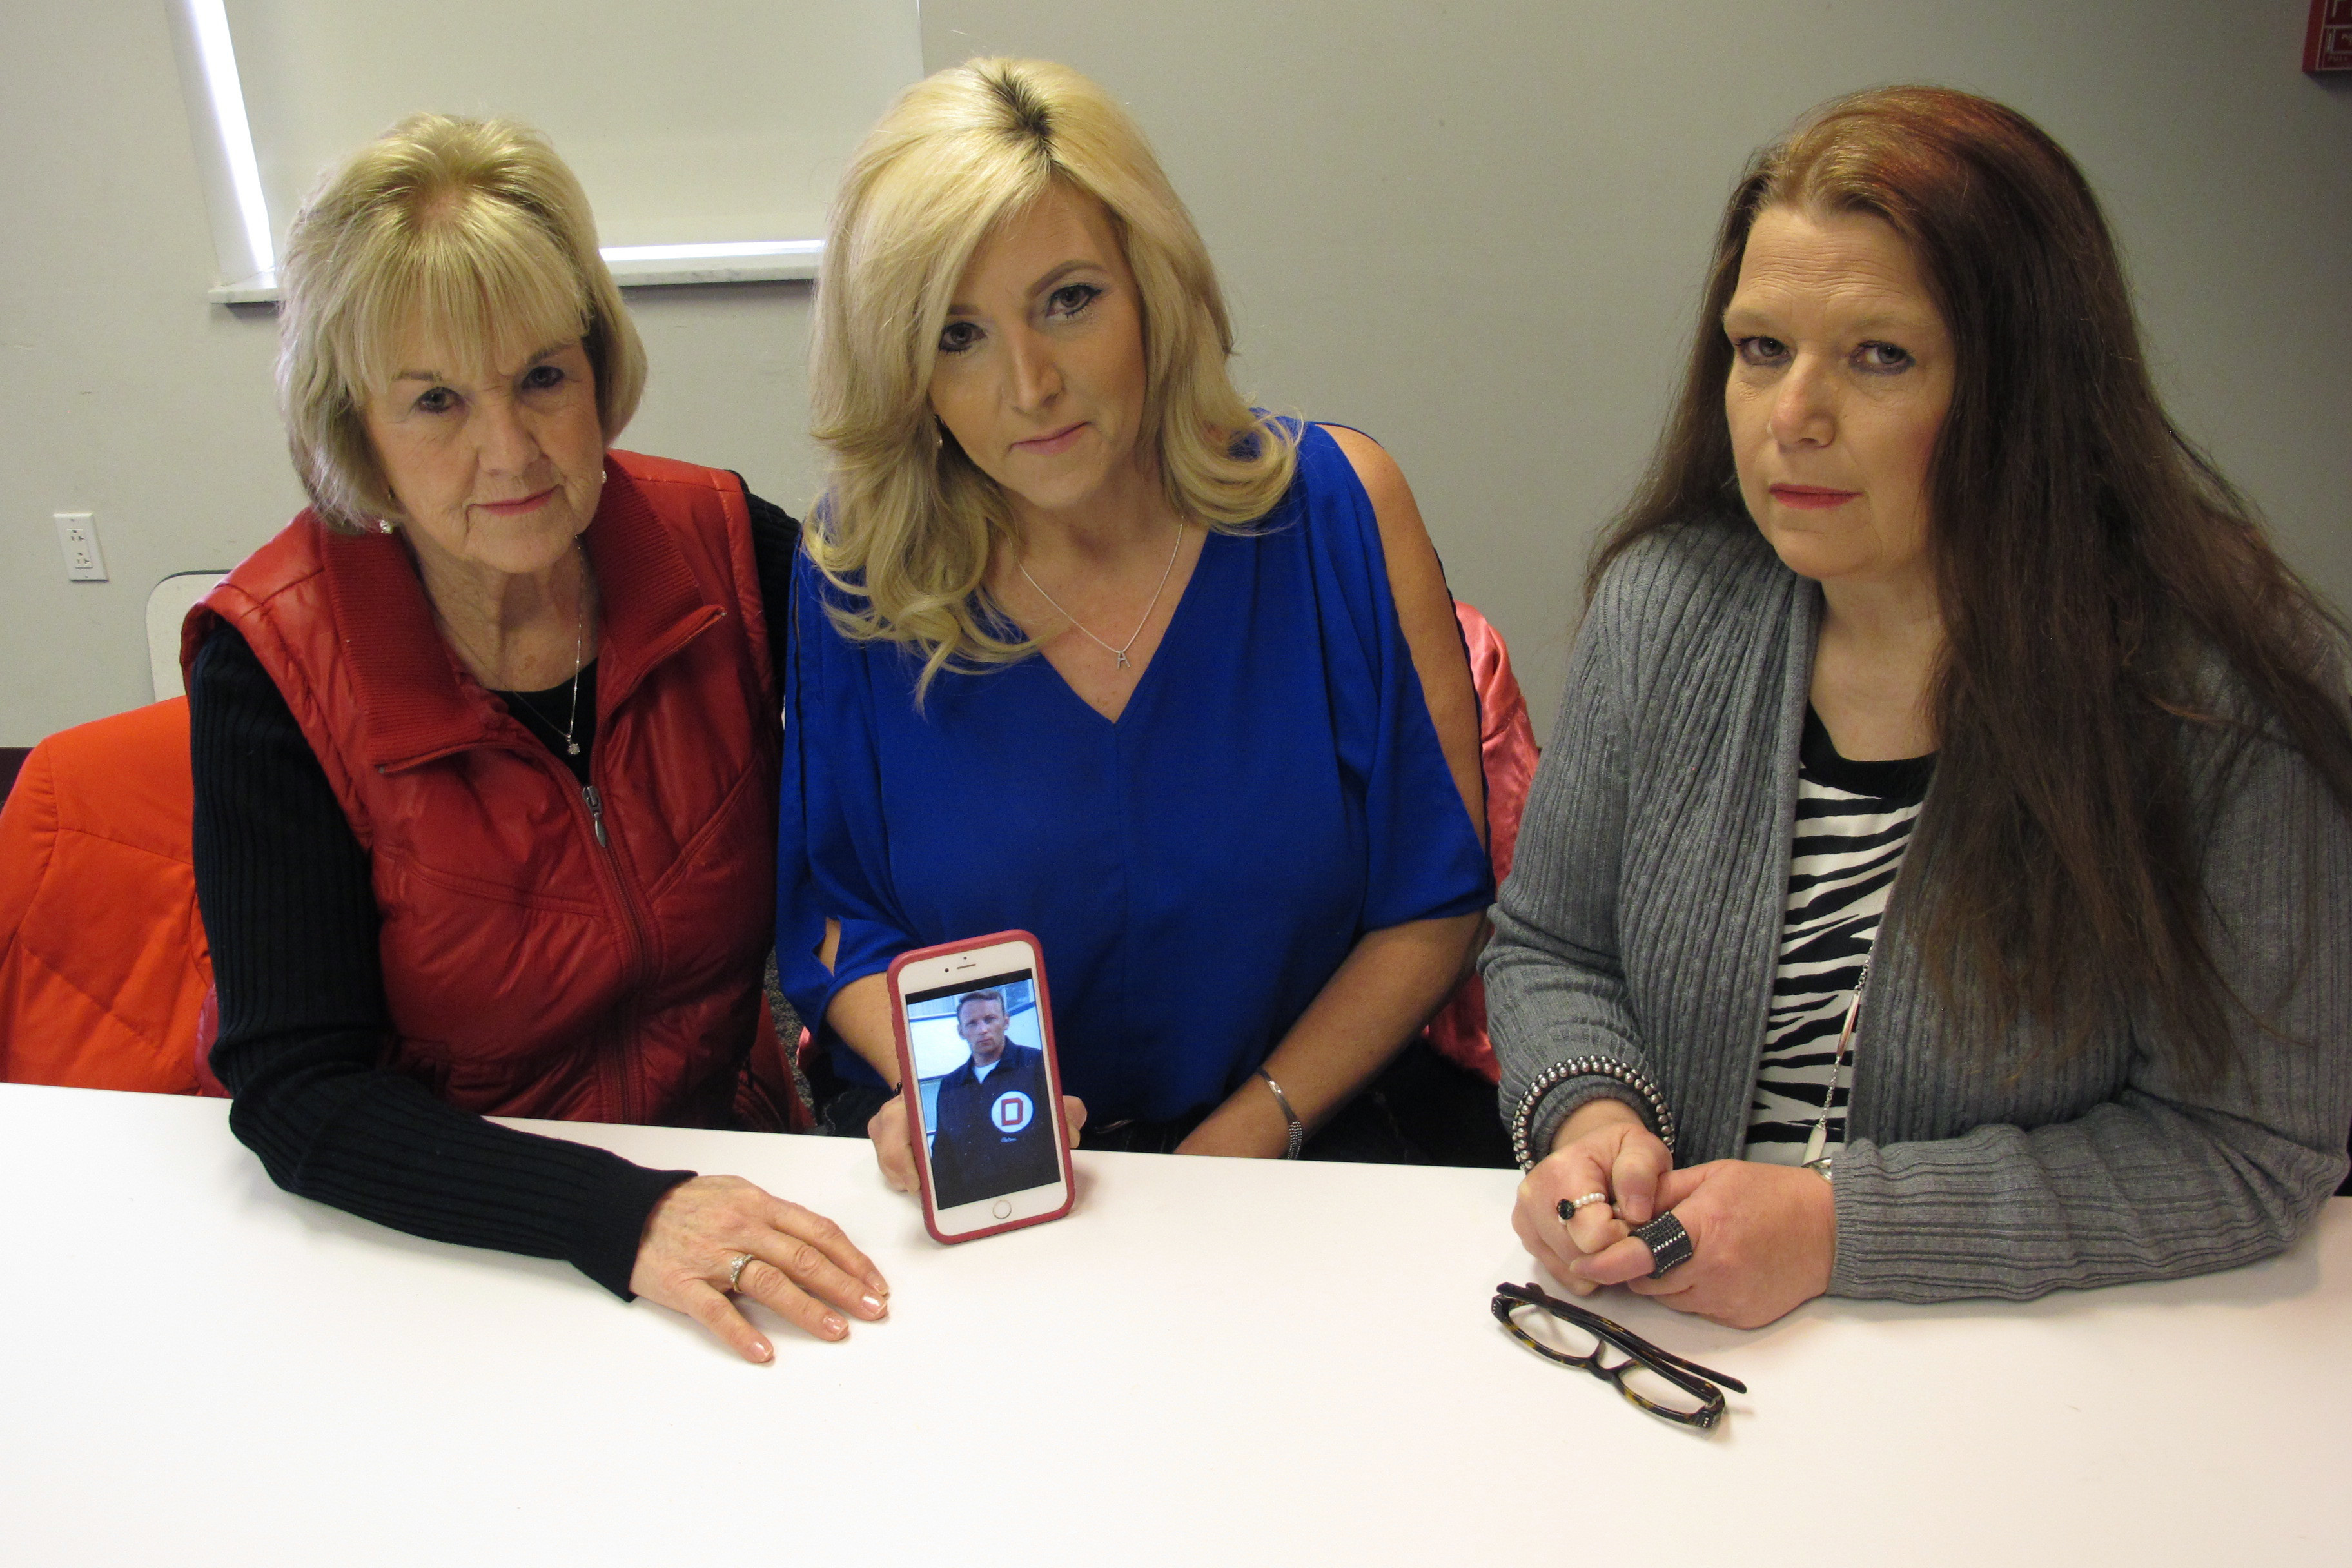 (L-R) Becky Cooper the ex-wife of former Columbus police Officer Niki